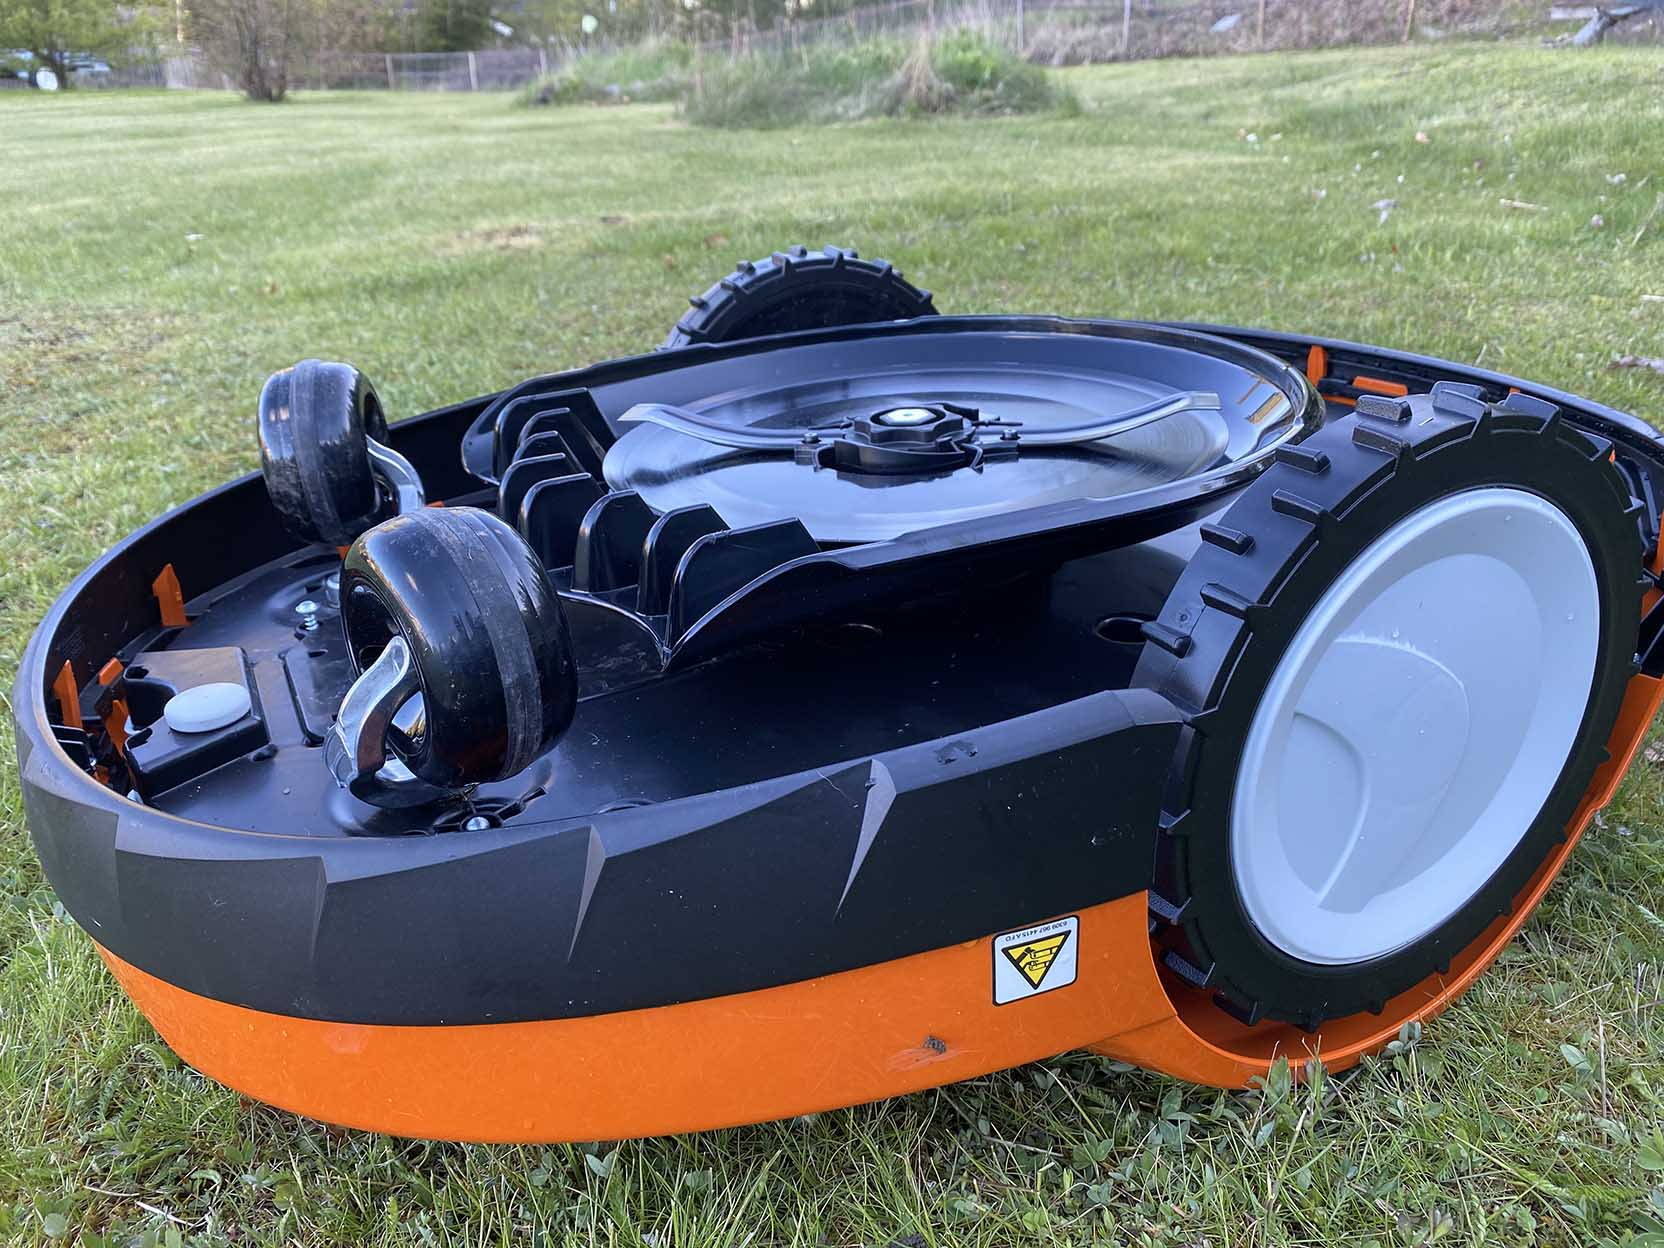 The underside of the Stihl RMI 632 PC robotic lawn mower consists four wheels and a blade deck with fixed blades